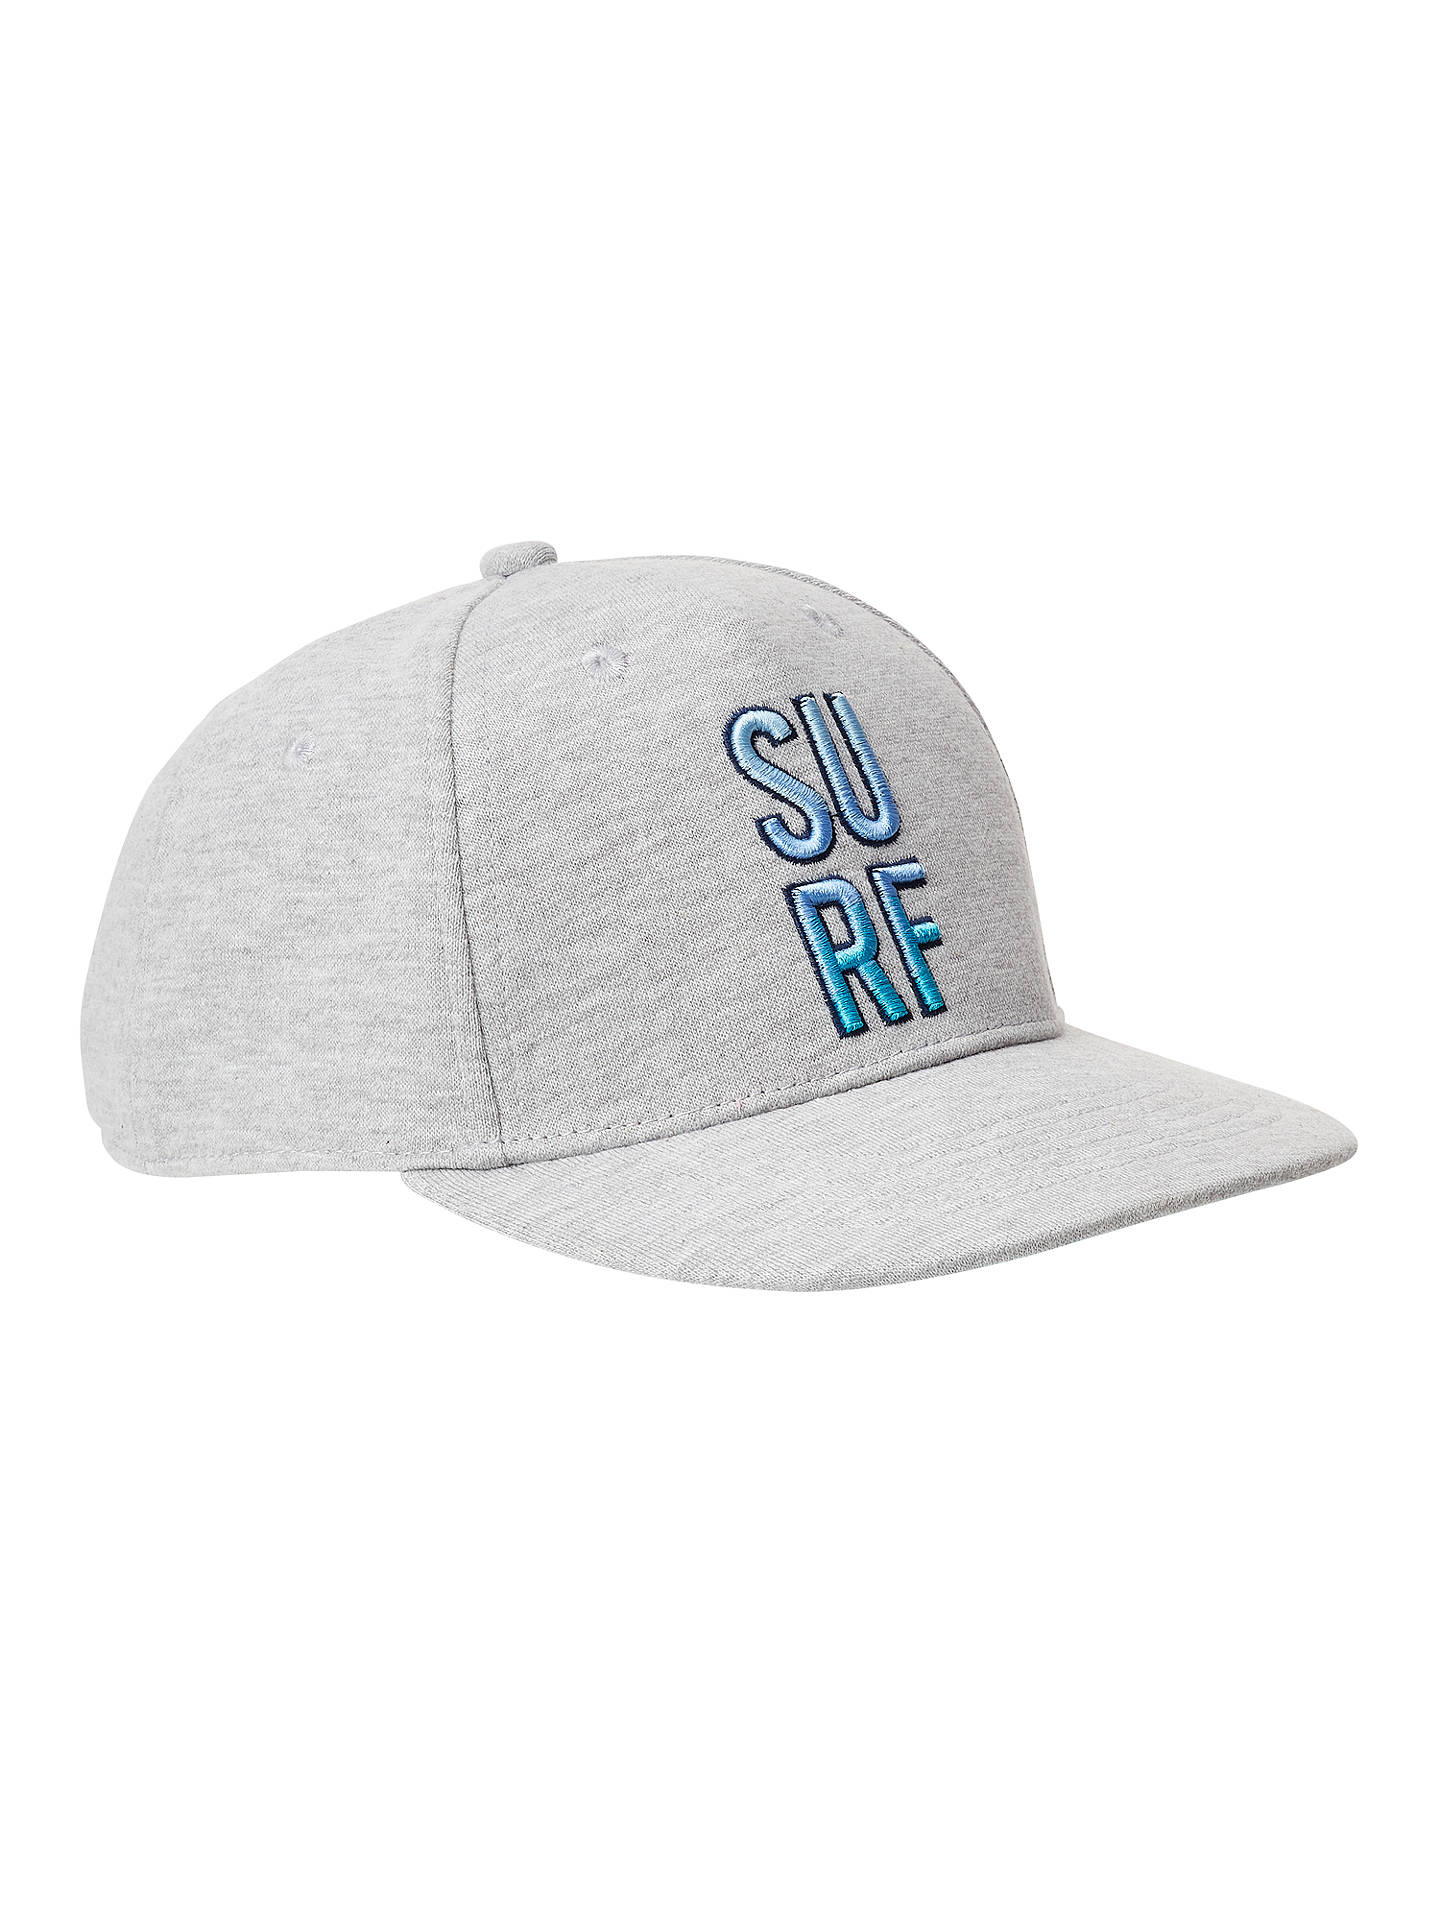 Buy John Lewis & Partners Children's Surf Embroidery Baseball Cap, Grey, S/M Online at johnlewis.com